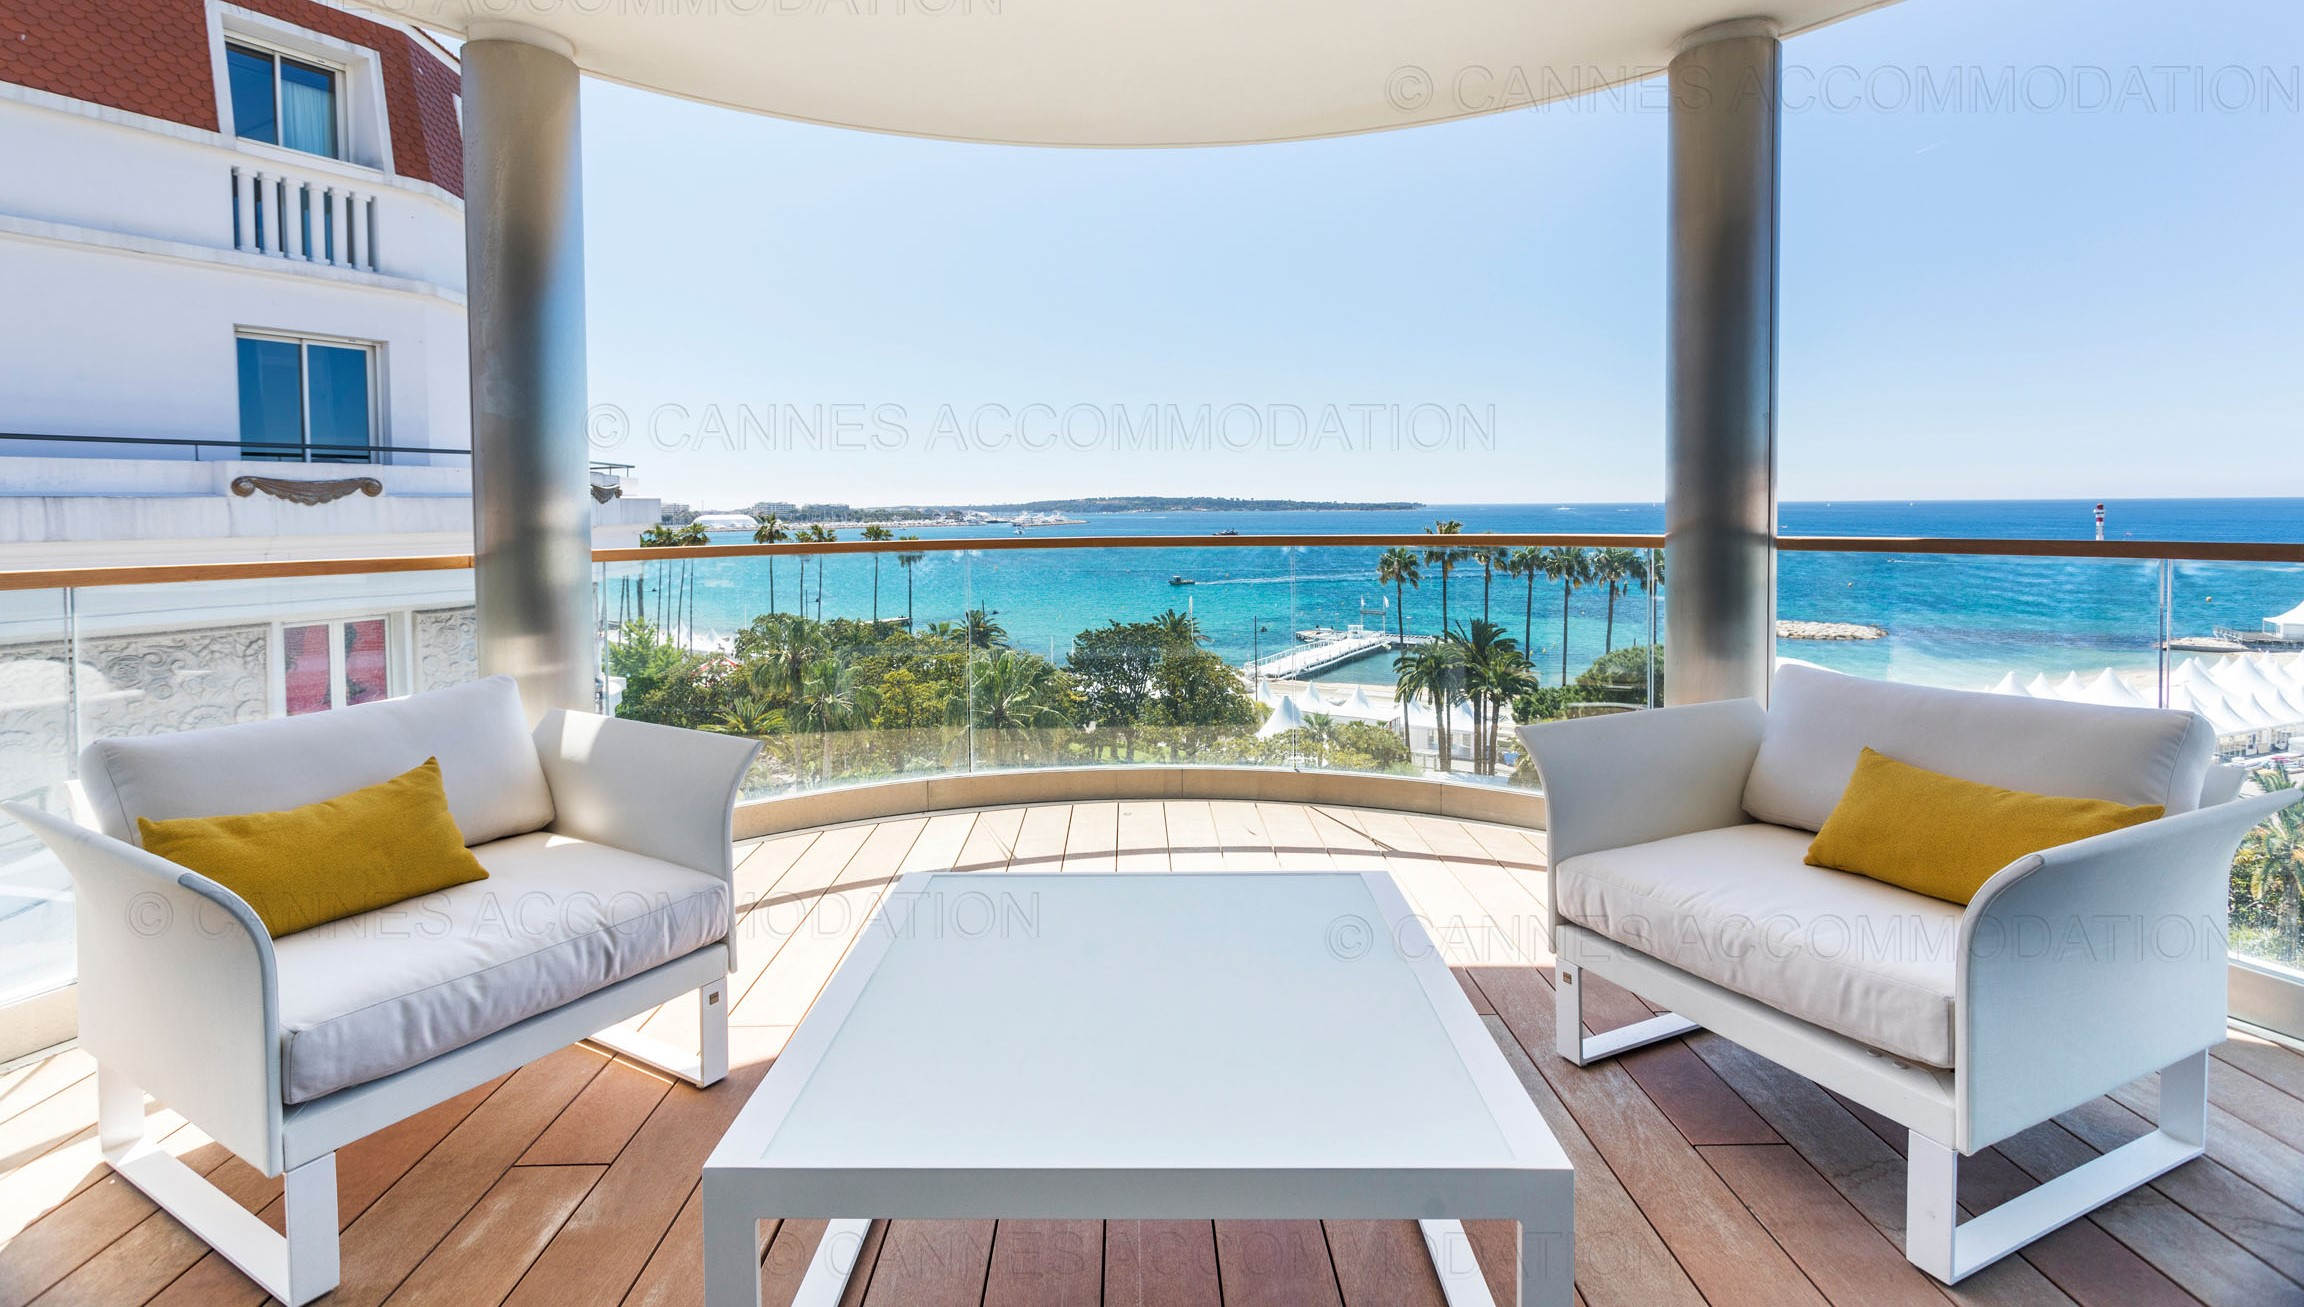 Cannes Accommodations CONDITIONS SPECIALES COVID19